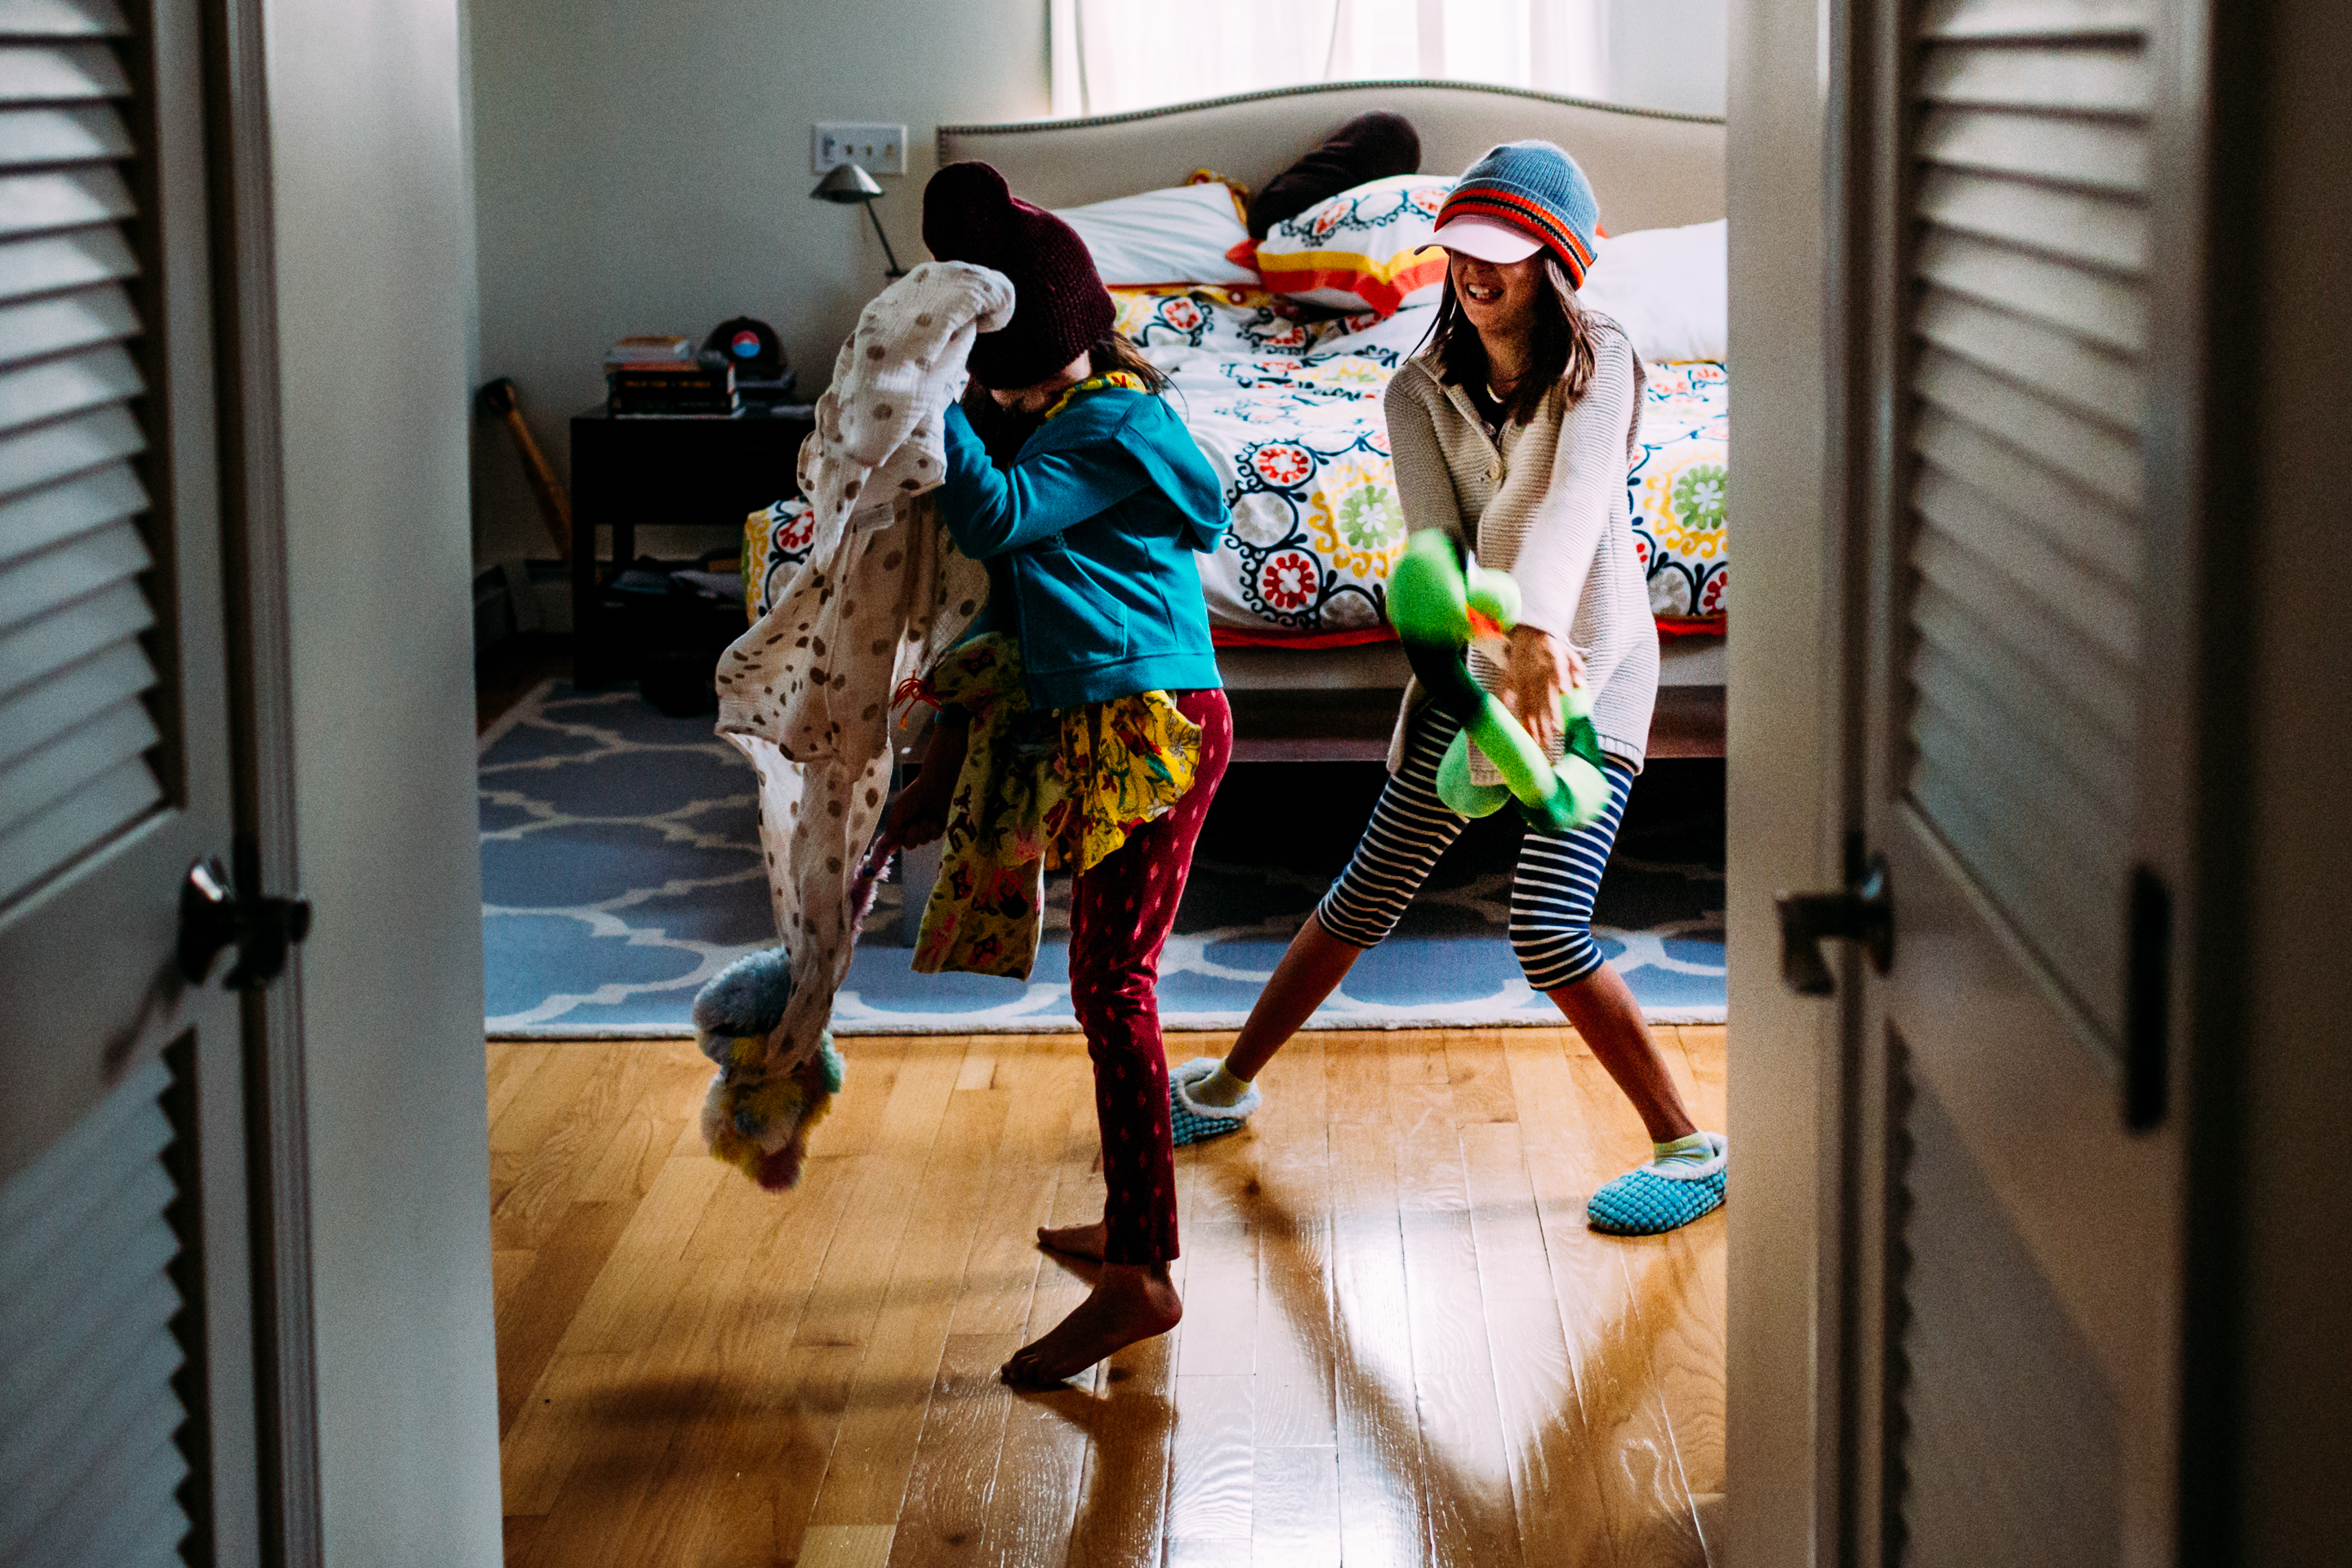 two girls throwing stuffed animals at each other